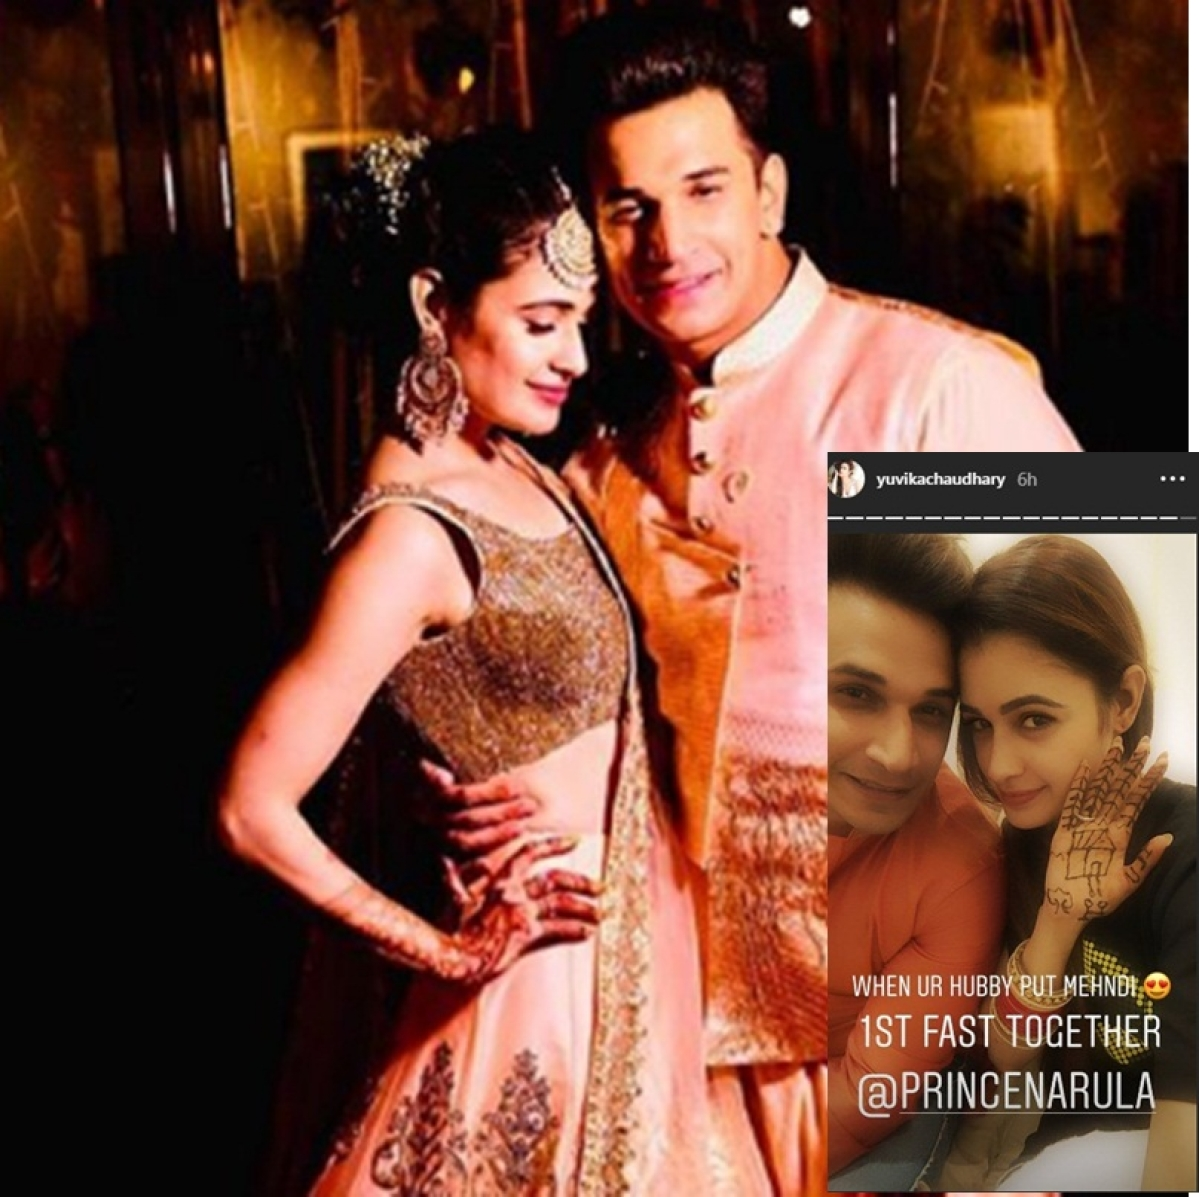 In Pictures: Prince, Yuvika celebrate their first Karwa Chauth